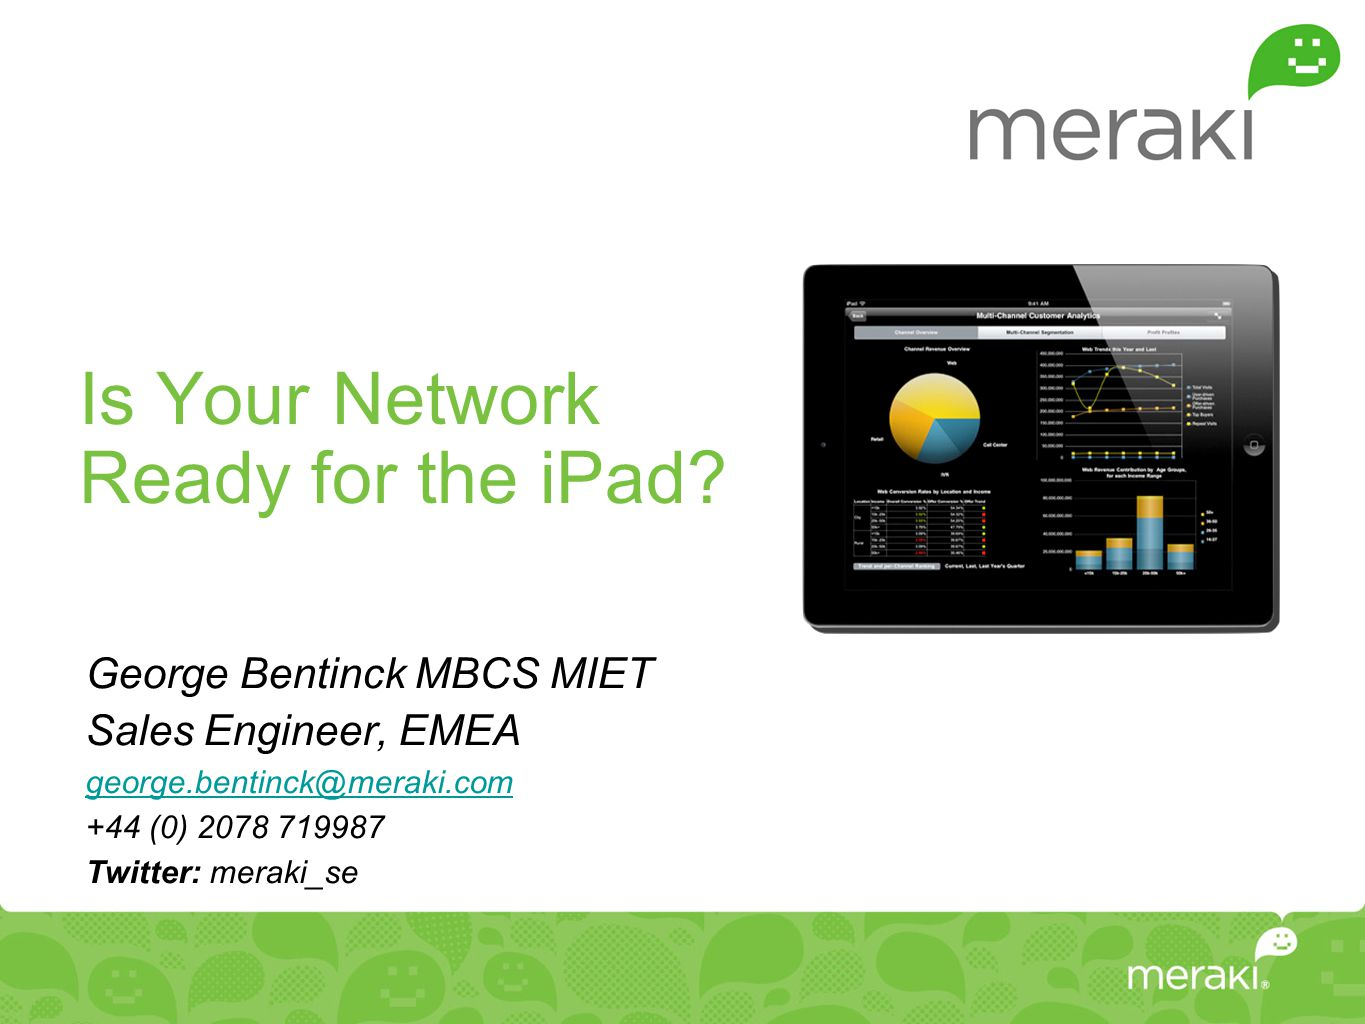 Is Your Network Ready for the iPad? George Bentinck MBCS MIET Sales Engineer, EMEA george.bentinck@meraki.com +44 (0) 2078 719987 Twitter: meraki_se